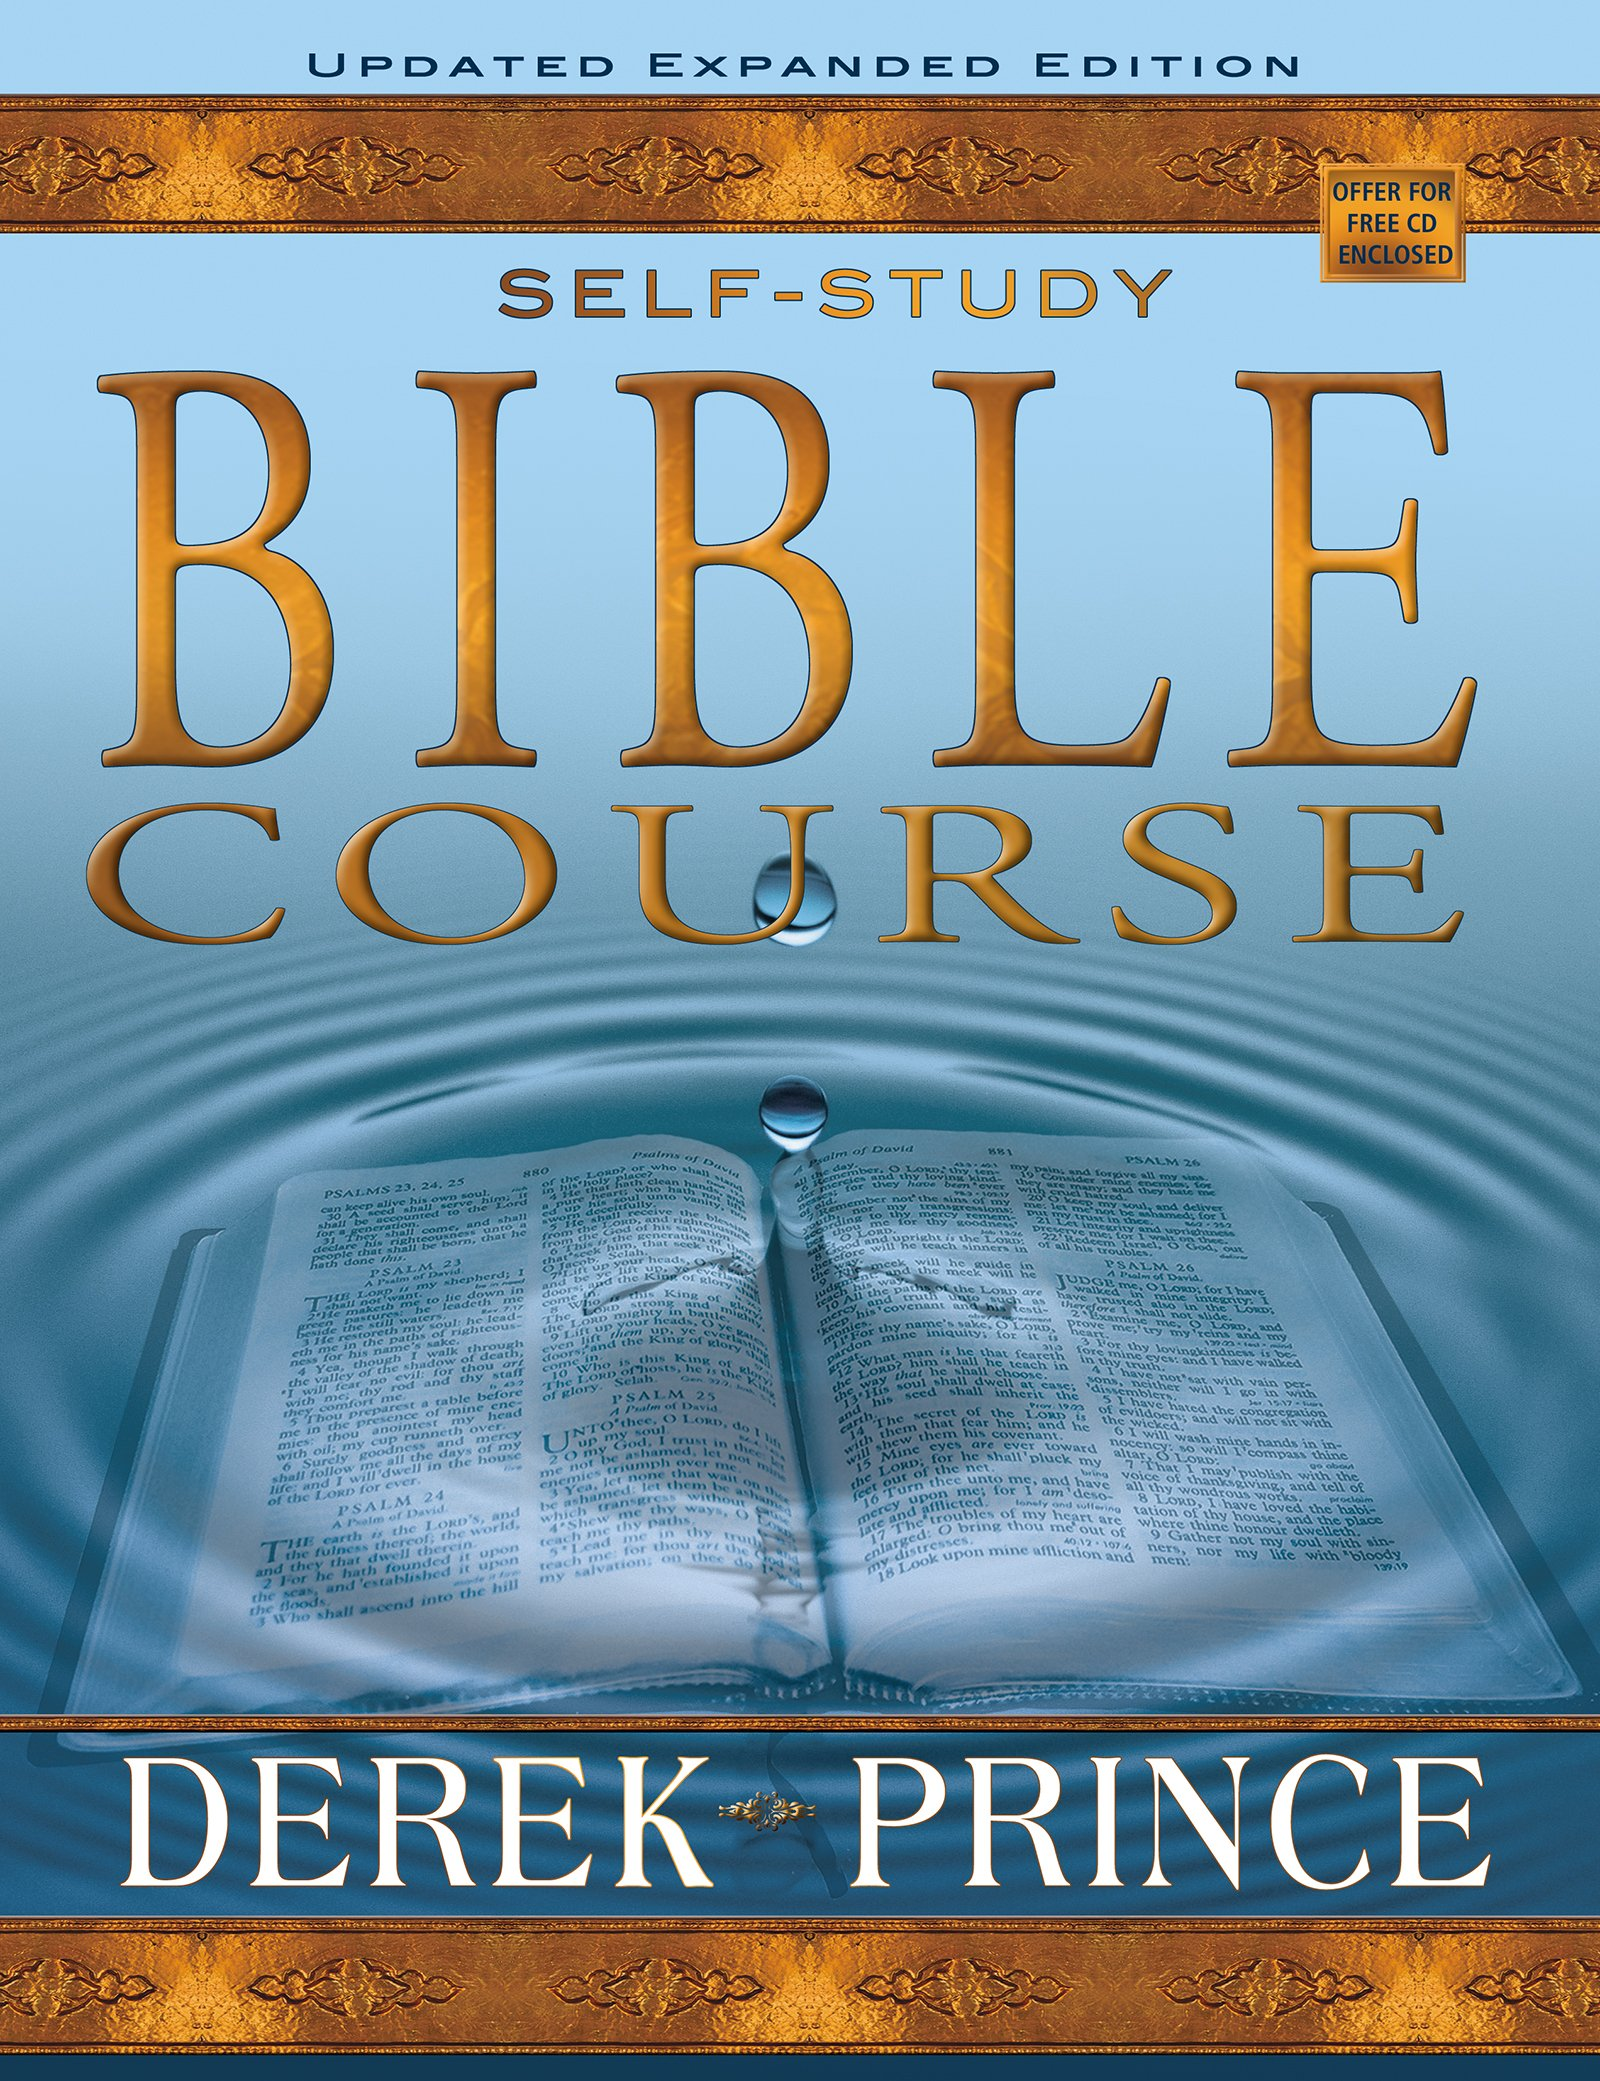 Self-Study Bible Course (Expanded): Derek Prince